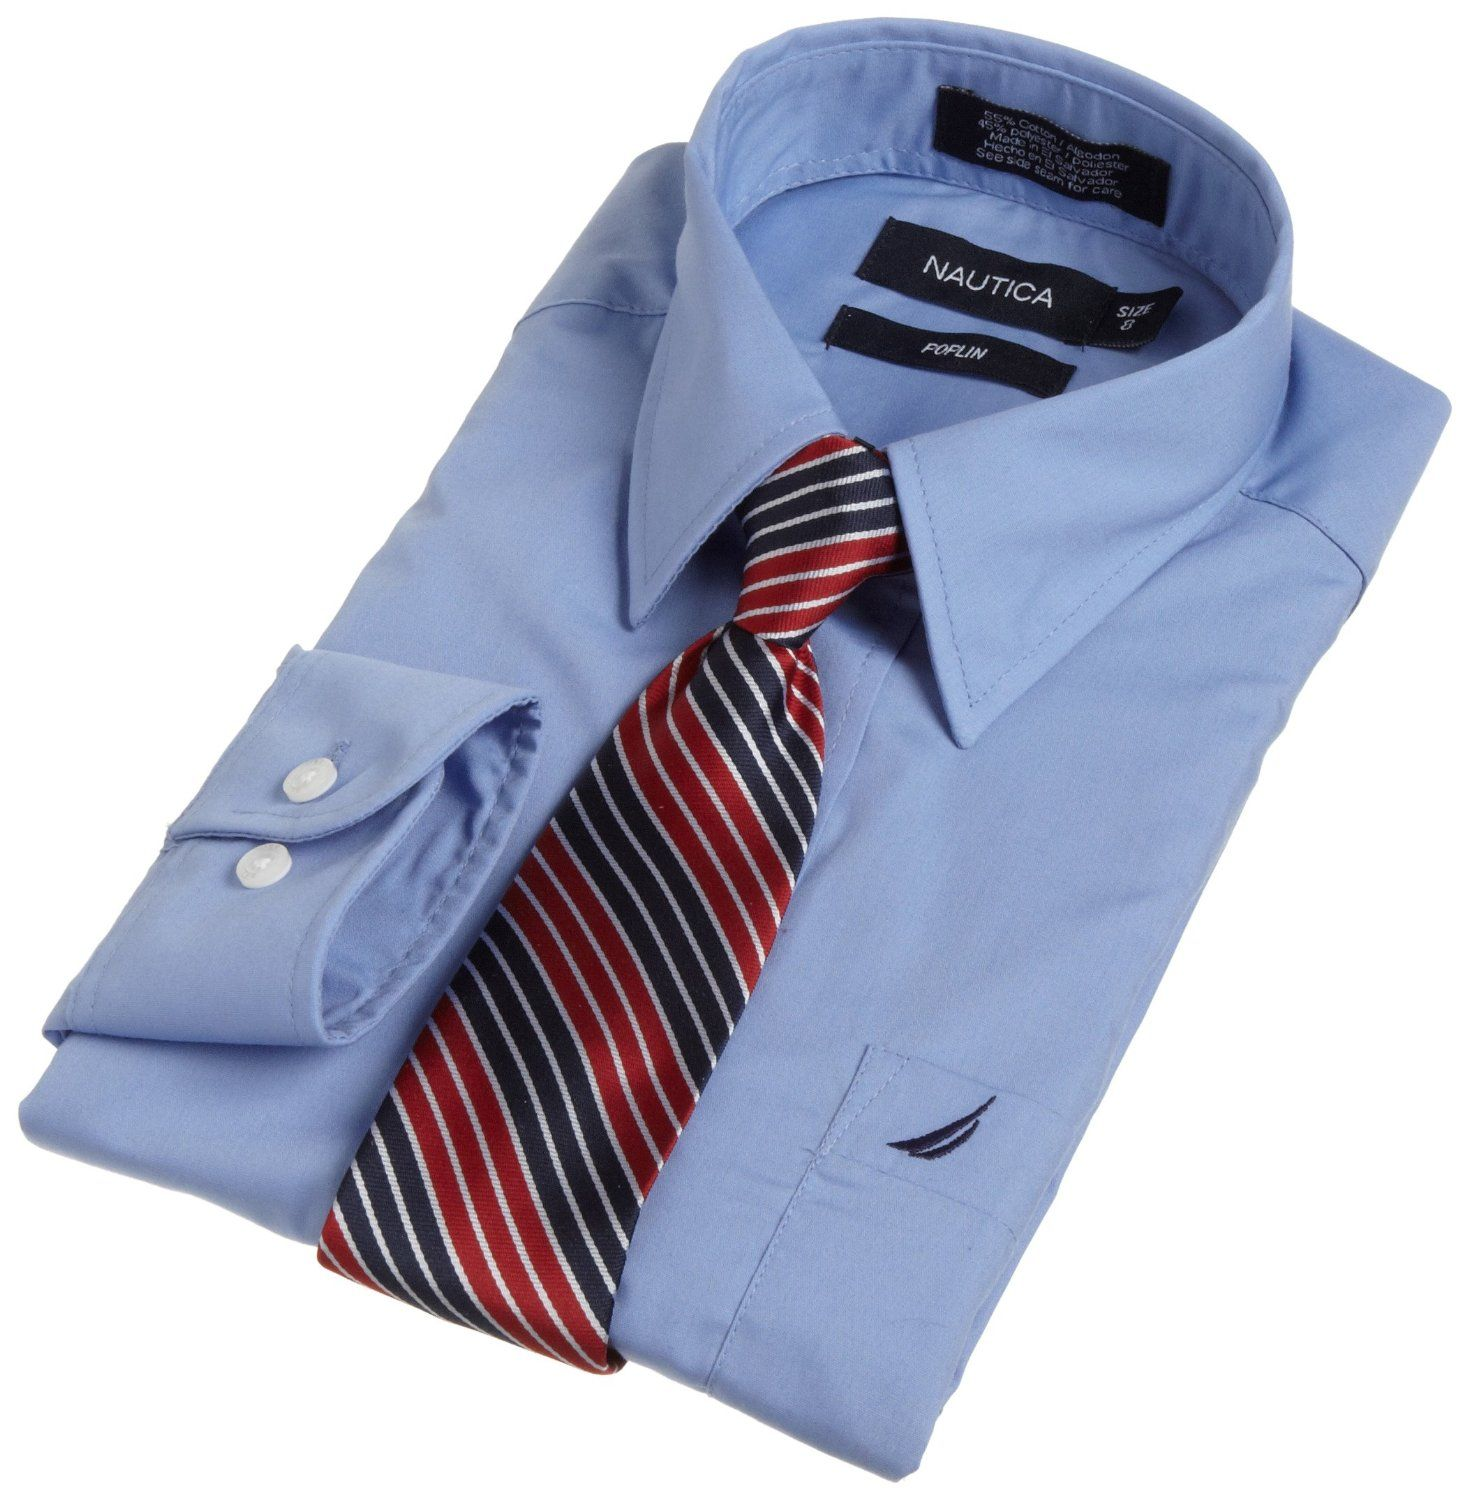 Boys dress shirts come in all different styles and fashions and if you want your boy up to date with a fashionable and cool shirt then you can not just go to the store and pick out anything.  http://cumberbun.net/tips-for-buying-a-boys-dress-shirts/